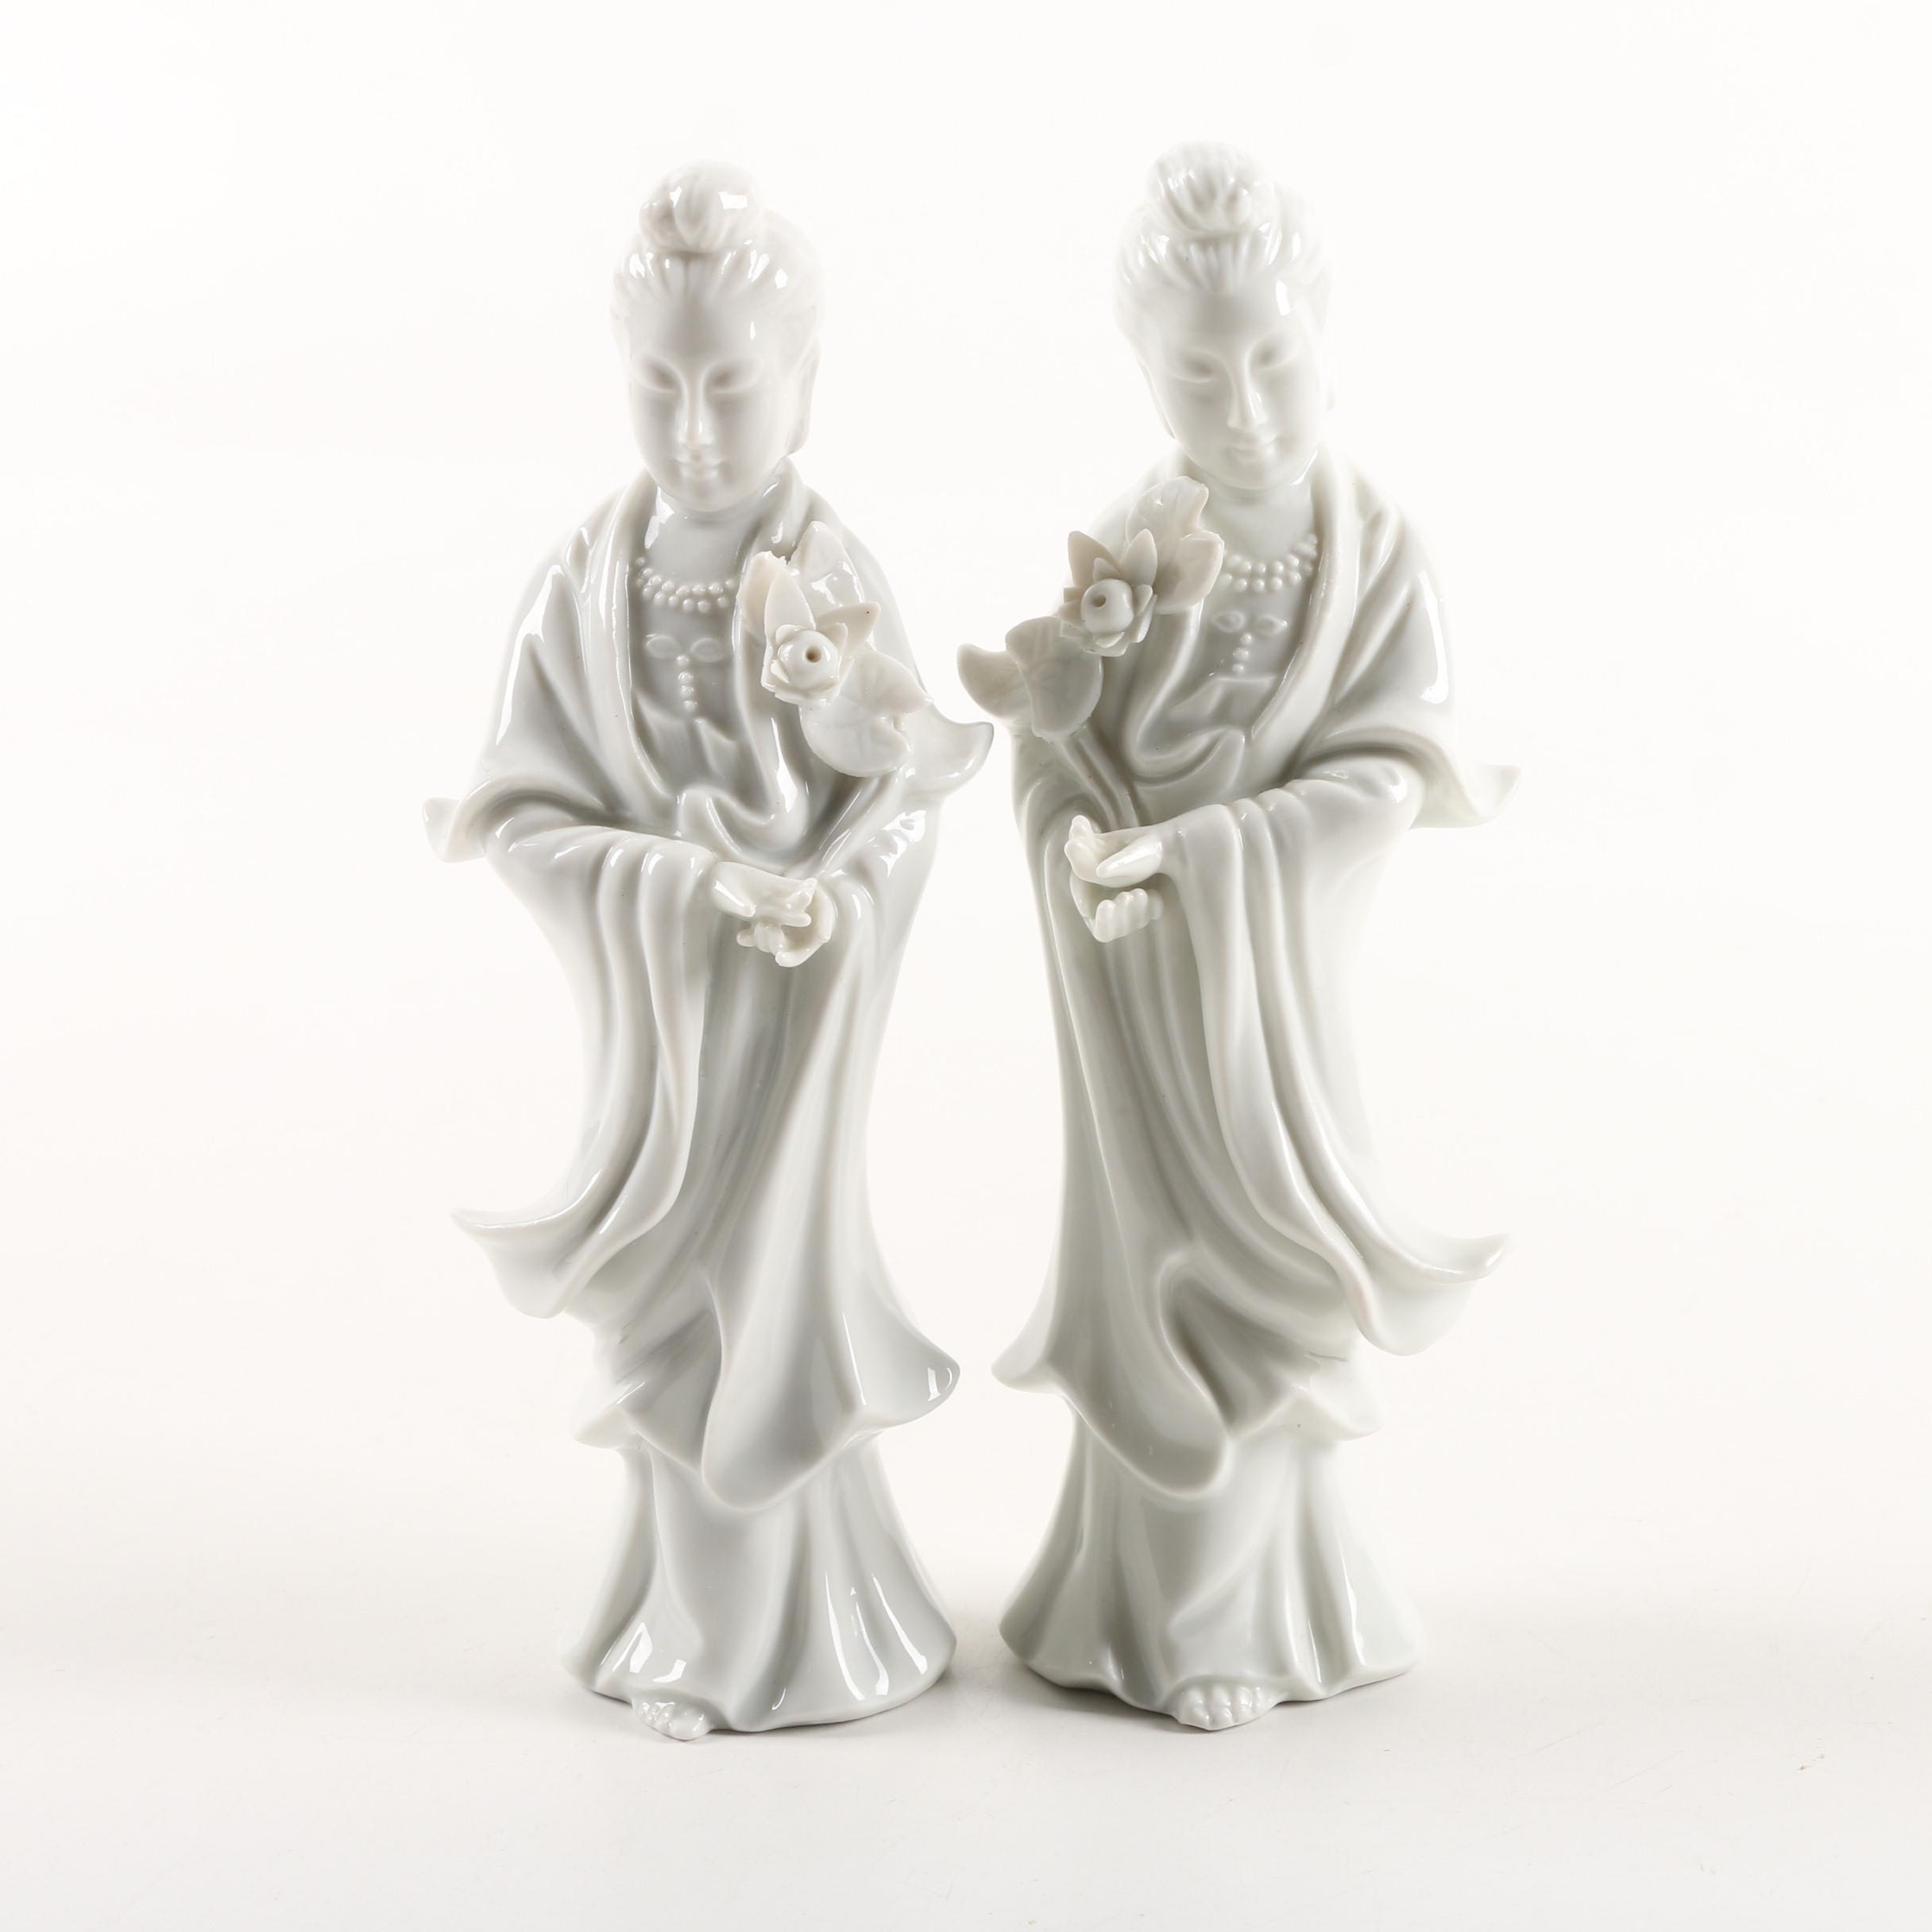 Fitz and Floyd Guanyin Blanc de Chine Porcelain Figurines